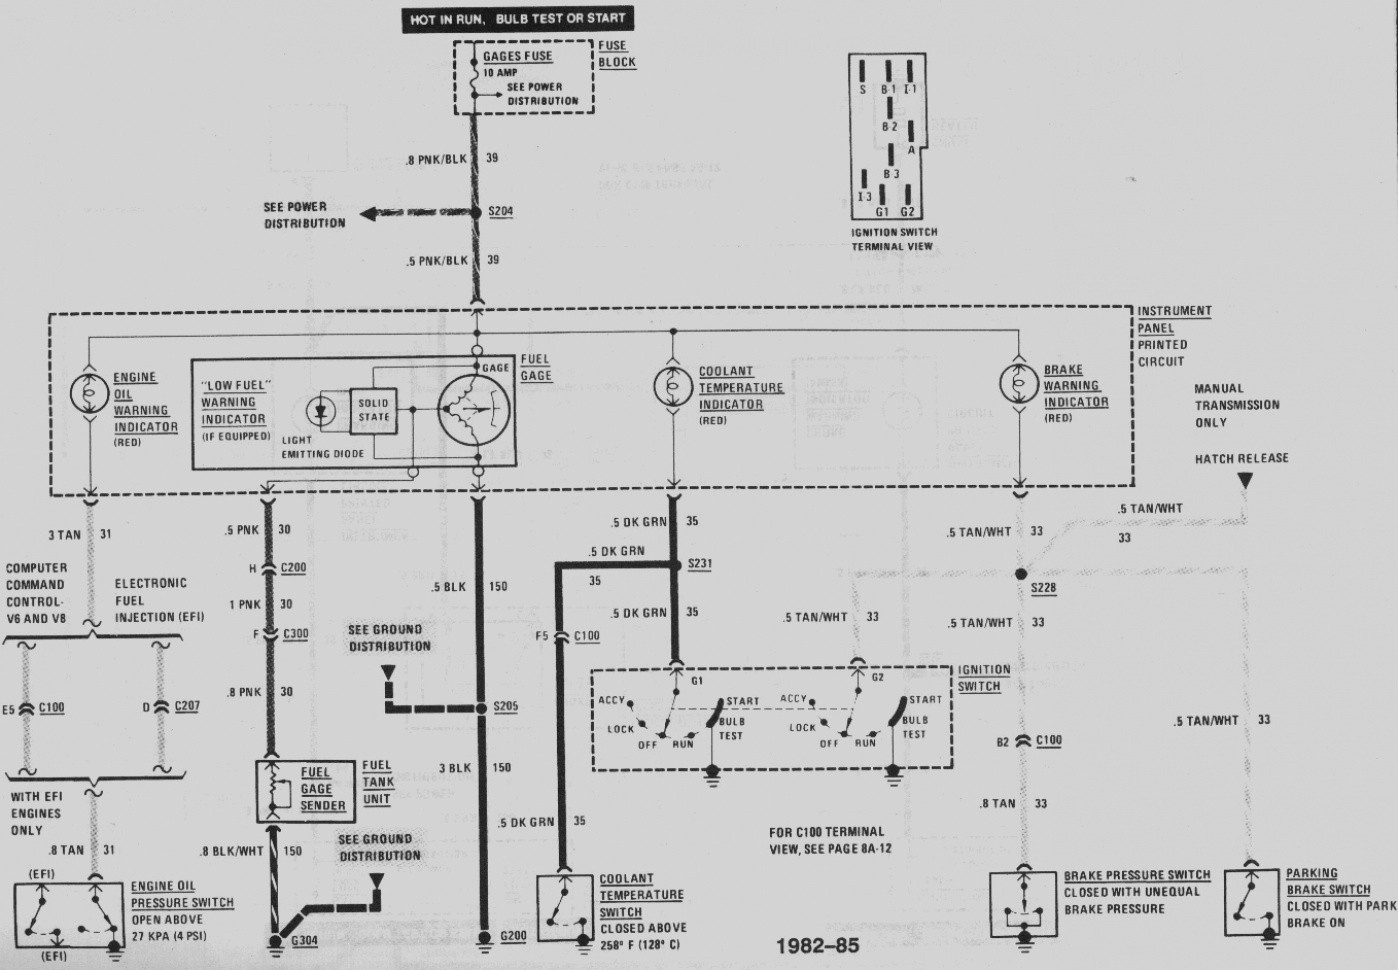 hight resolution of 86 chevy fuel gauge wiring diagram trusted wiring diagrams u2022 rh caribbeanblues co equus fuel gauge